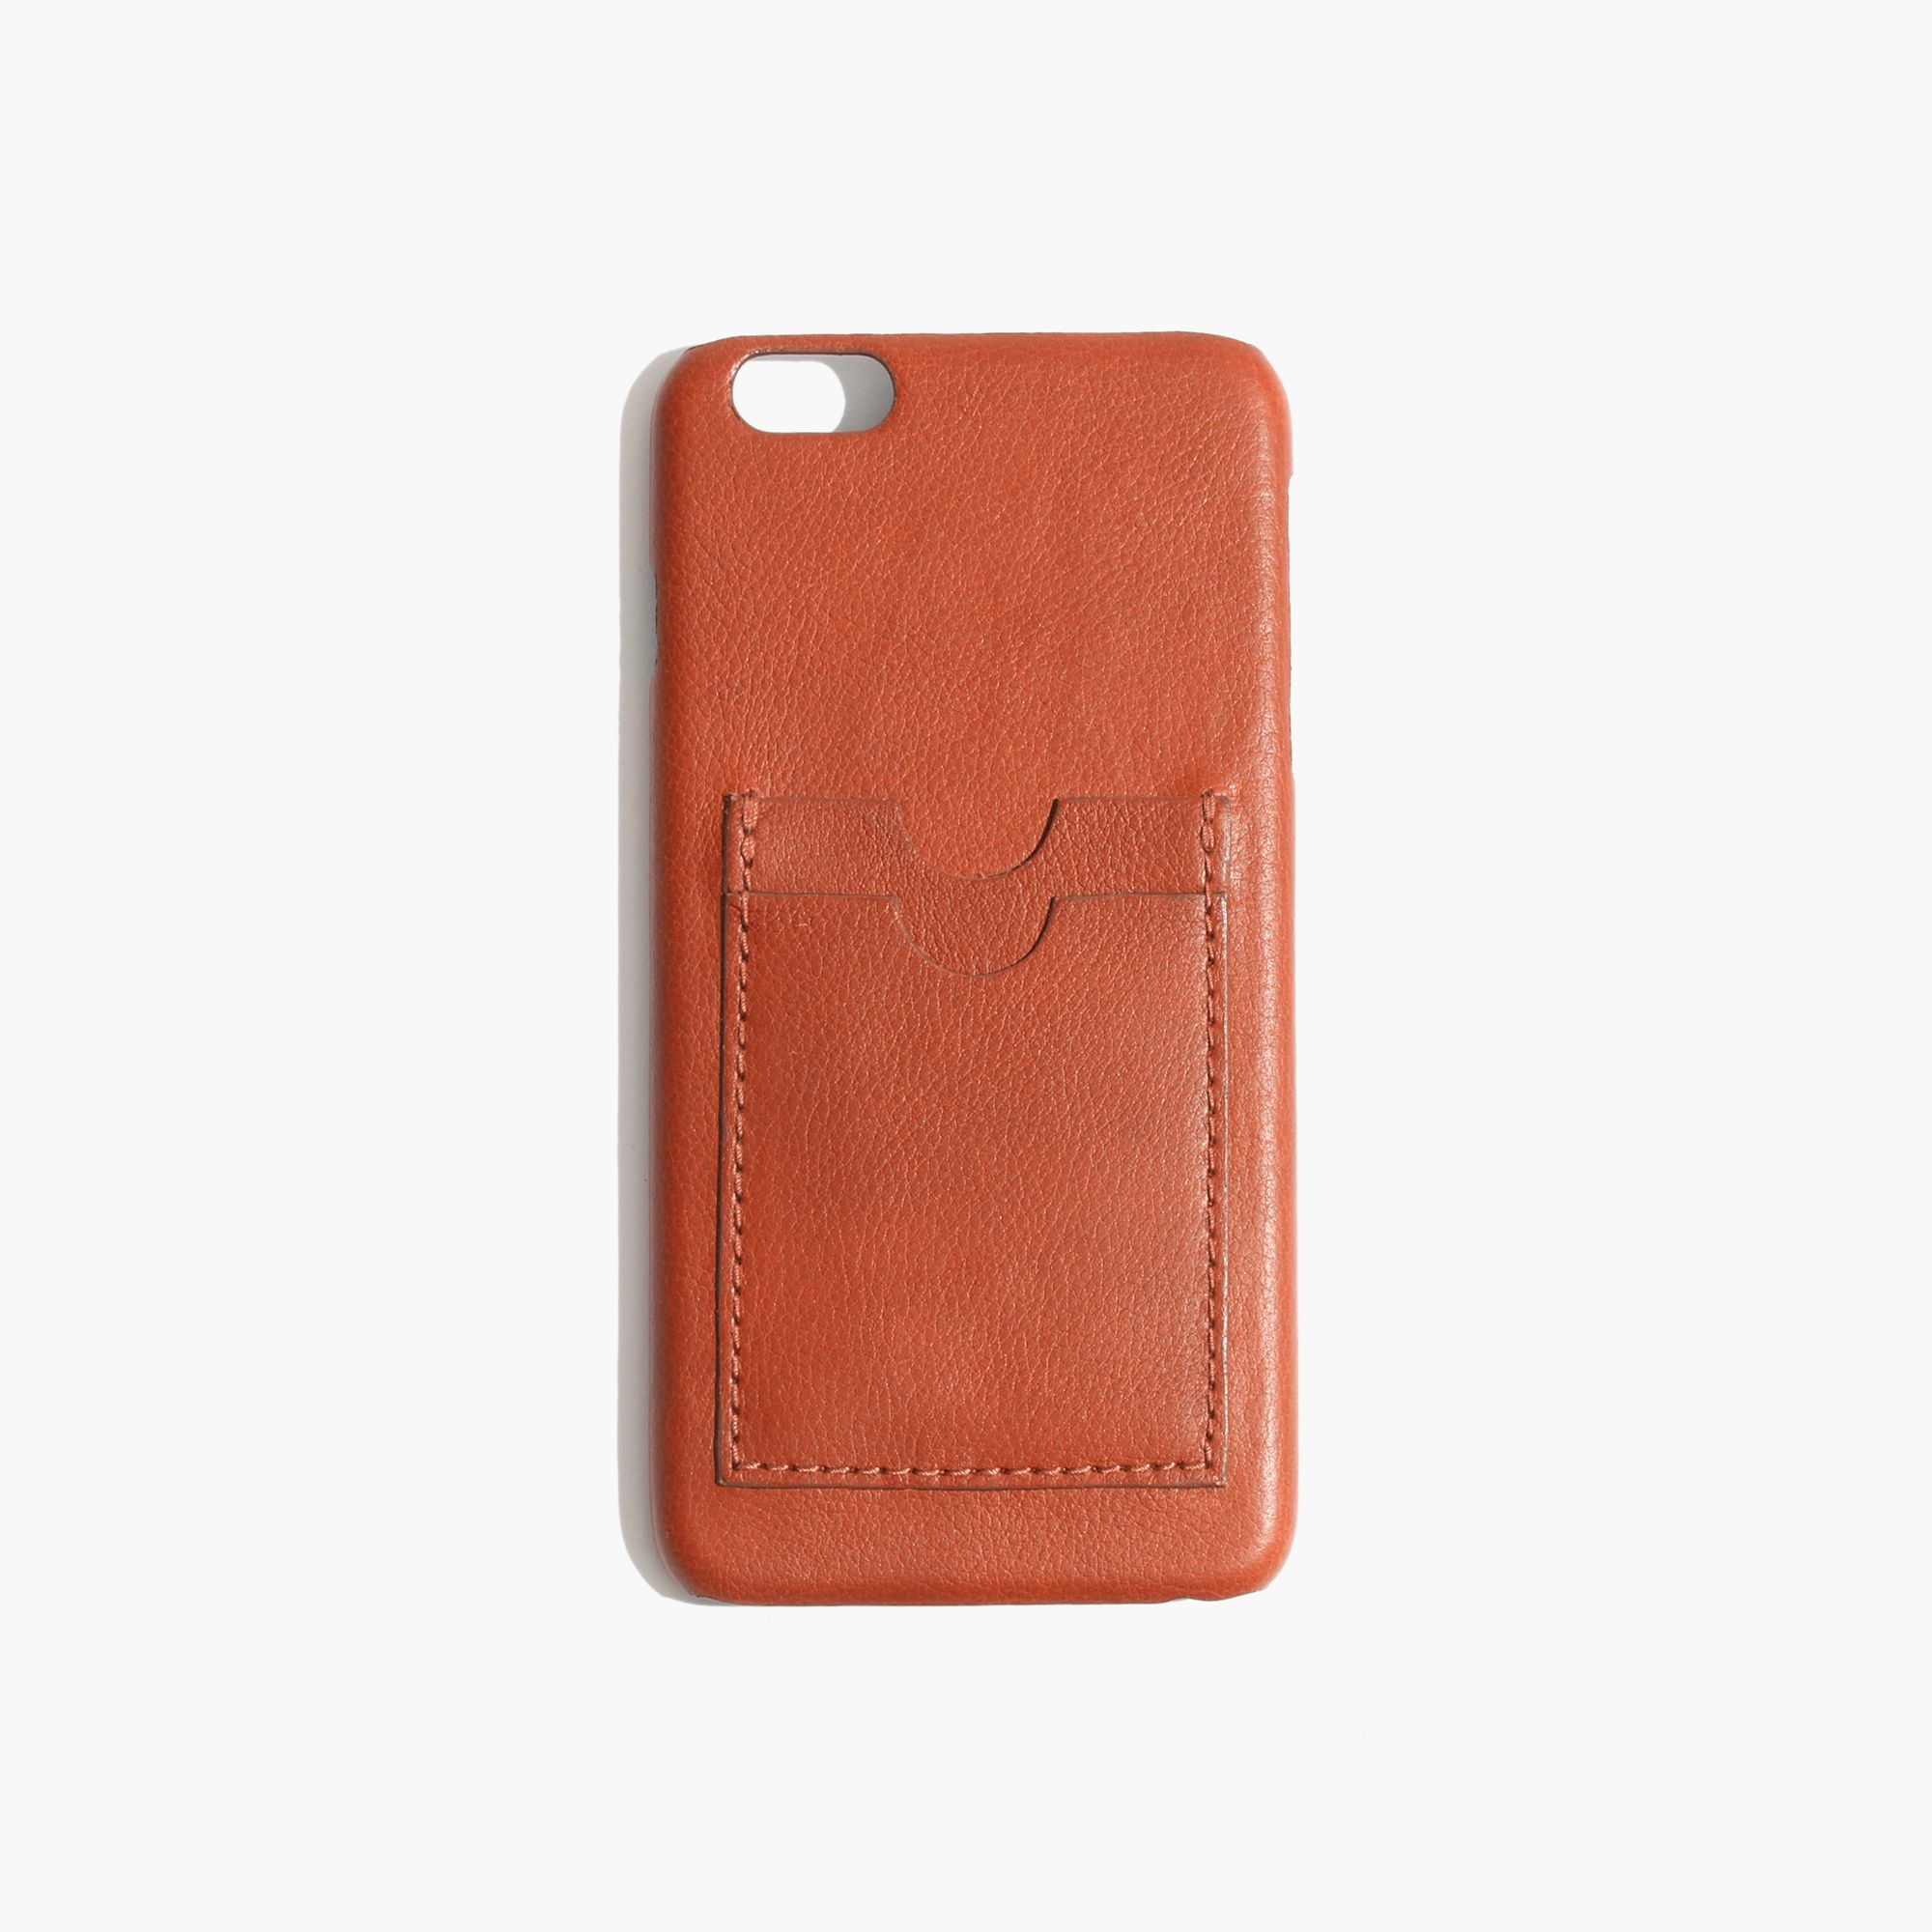 madewell iphone case madewell leather carryall for iphone 174 6 plus in brown 8775